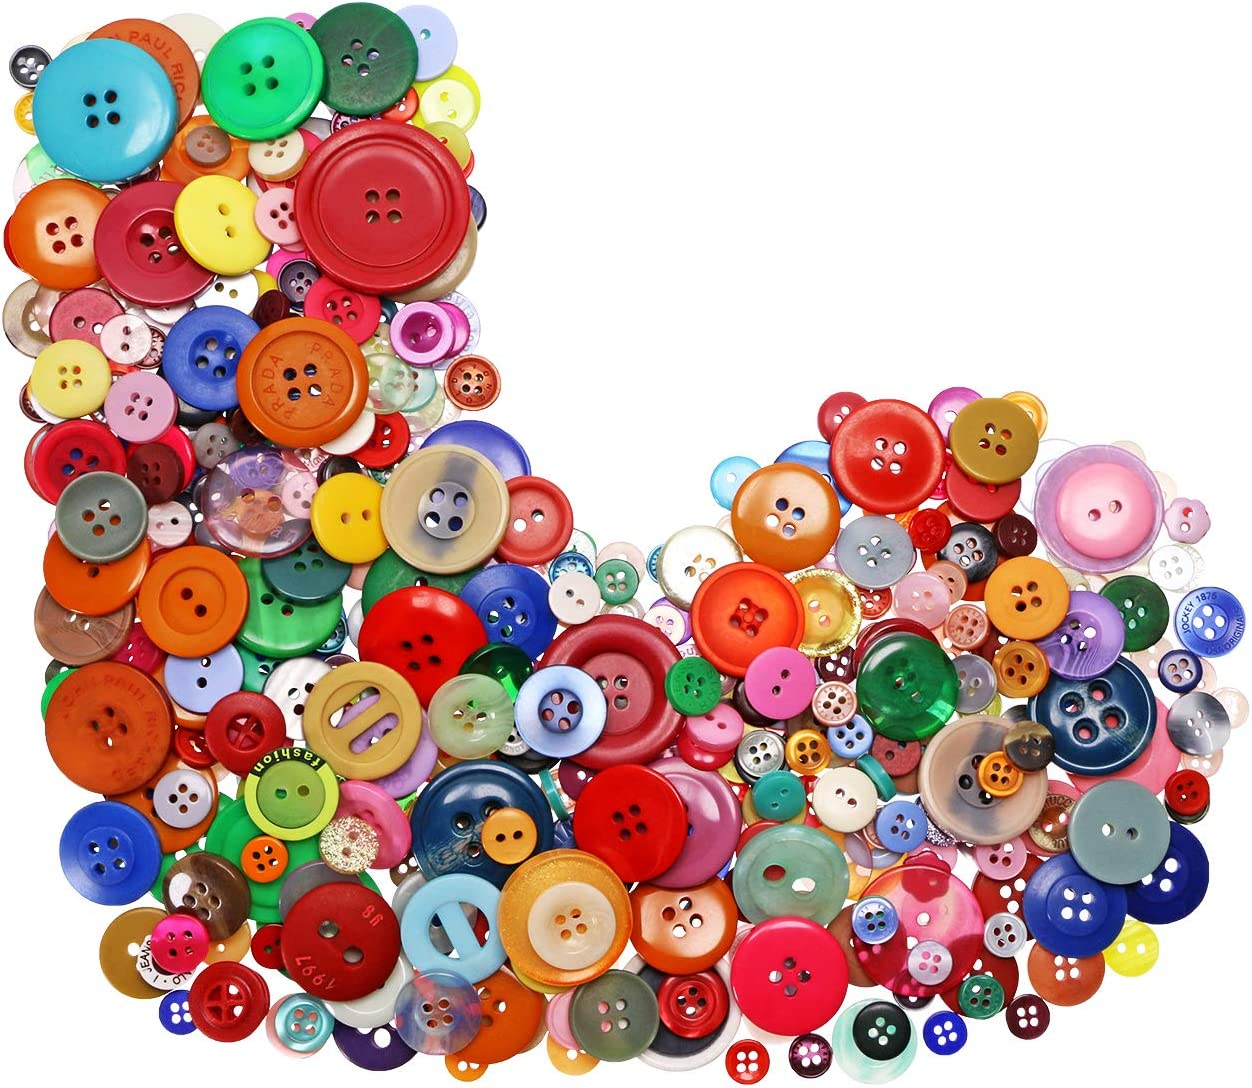 Tupalizy 500-600PCS Assorted Sizes and Shapes Resin Buttons for Sewing Mixed Colors Round Craft Buttons for Kids DIY Art Craft Project Manual Button Painting Classroom School Home Use (Multicolor)